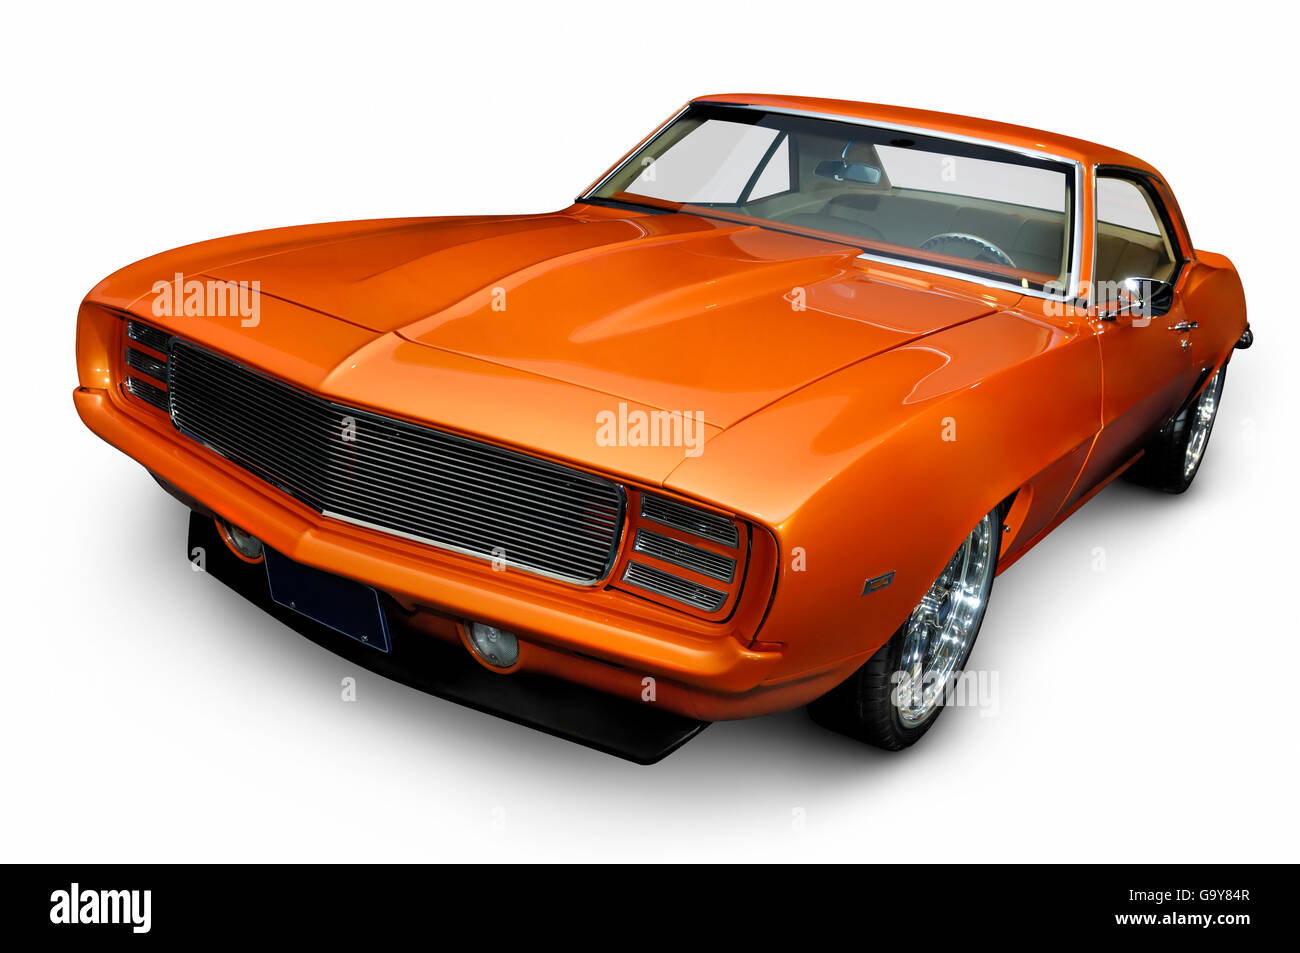 1969 Chevrolet Camaro RS/SS Classic Vintage Muscle Car   Stock Image